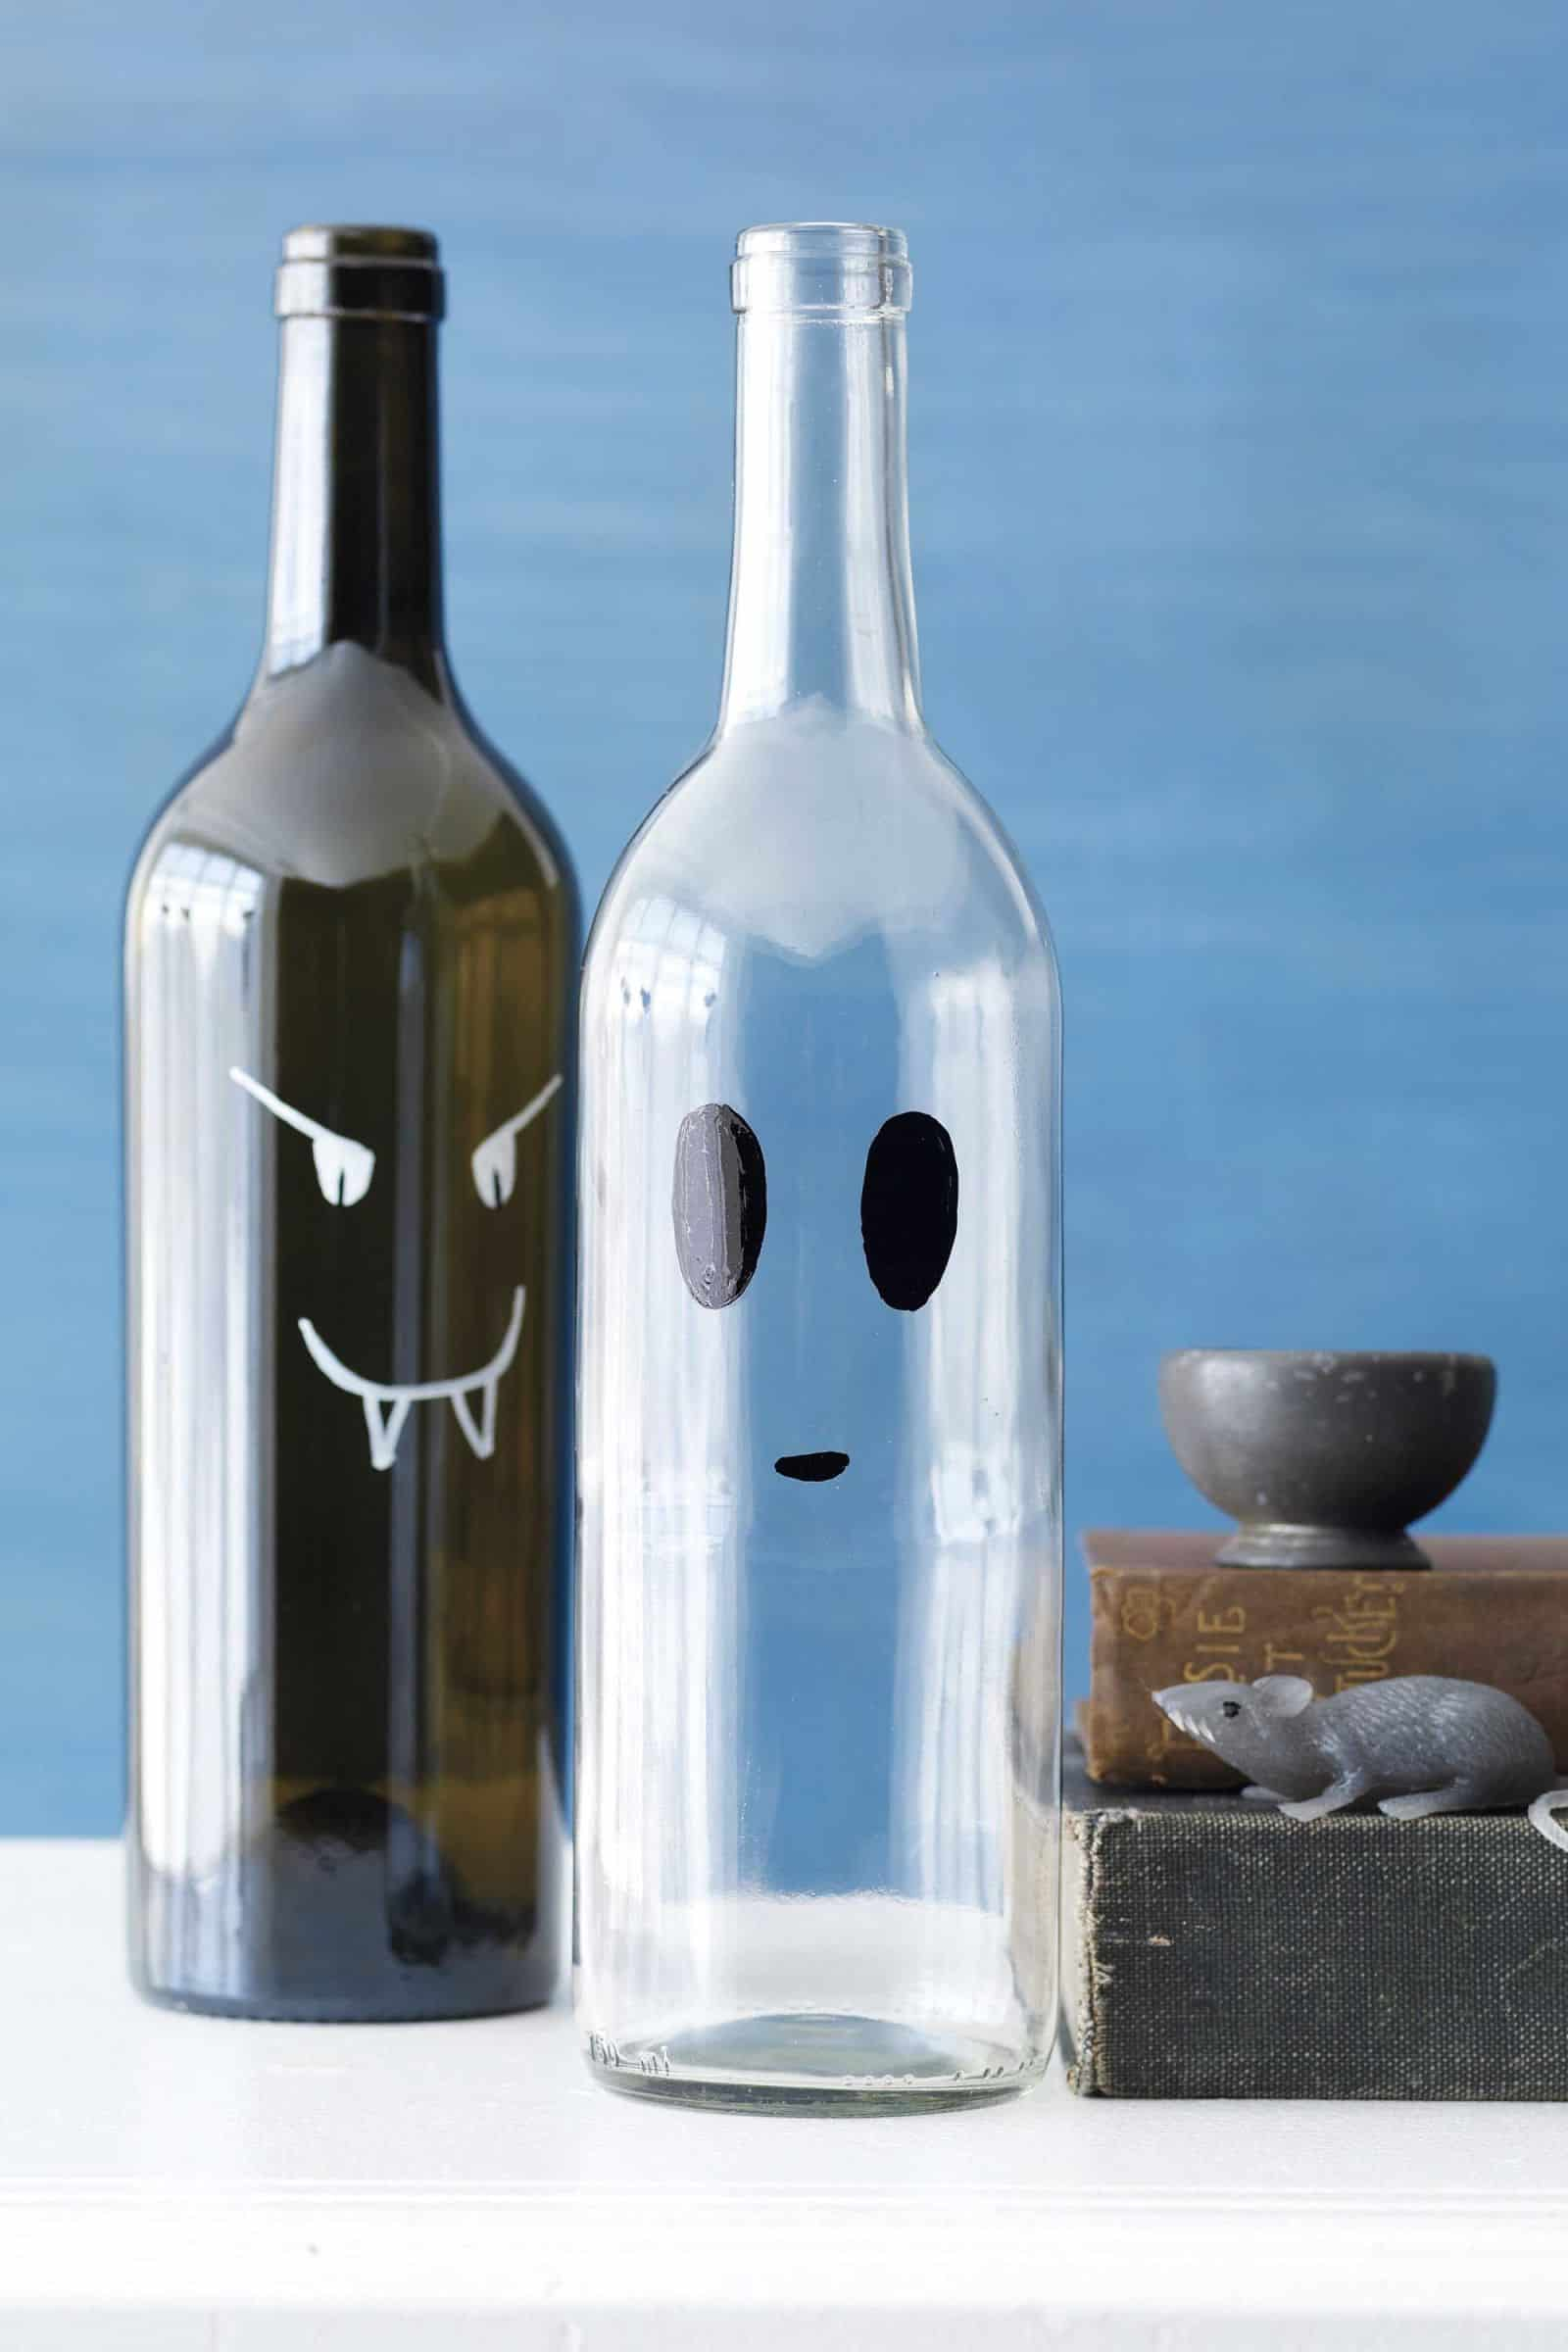 Vampire and ghost wine bottles diy